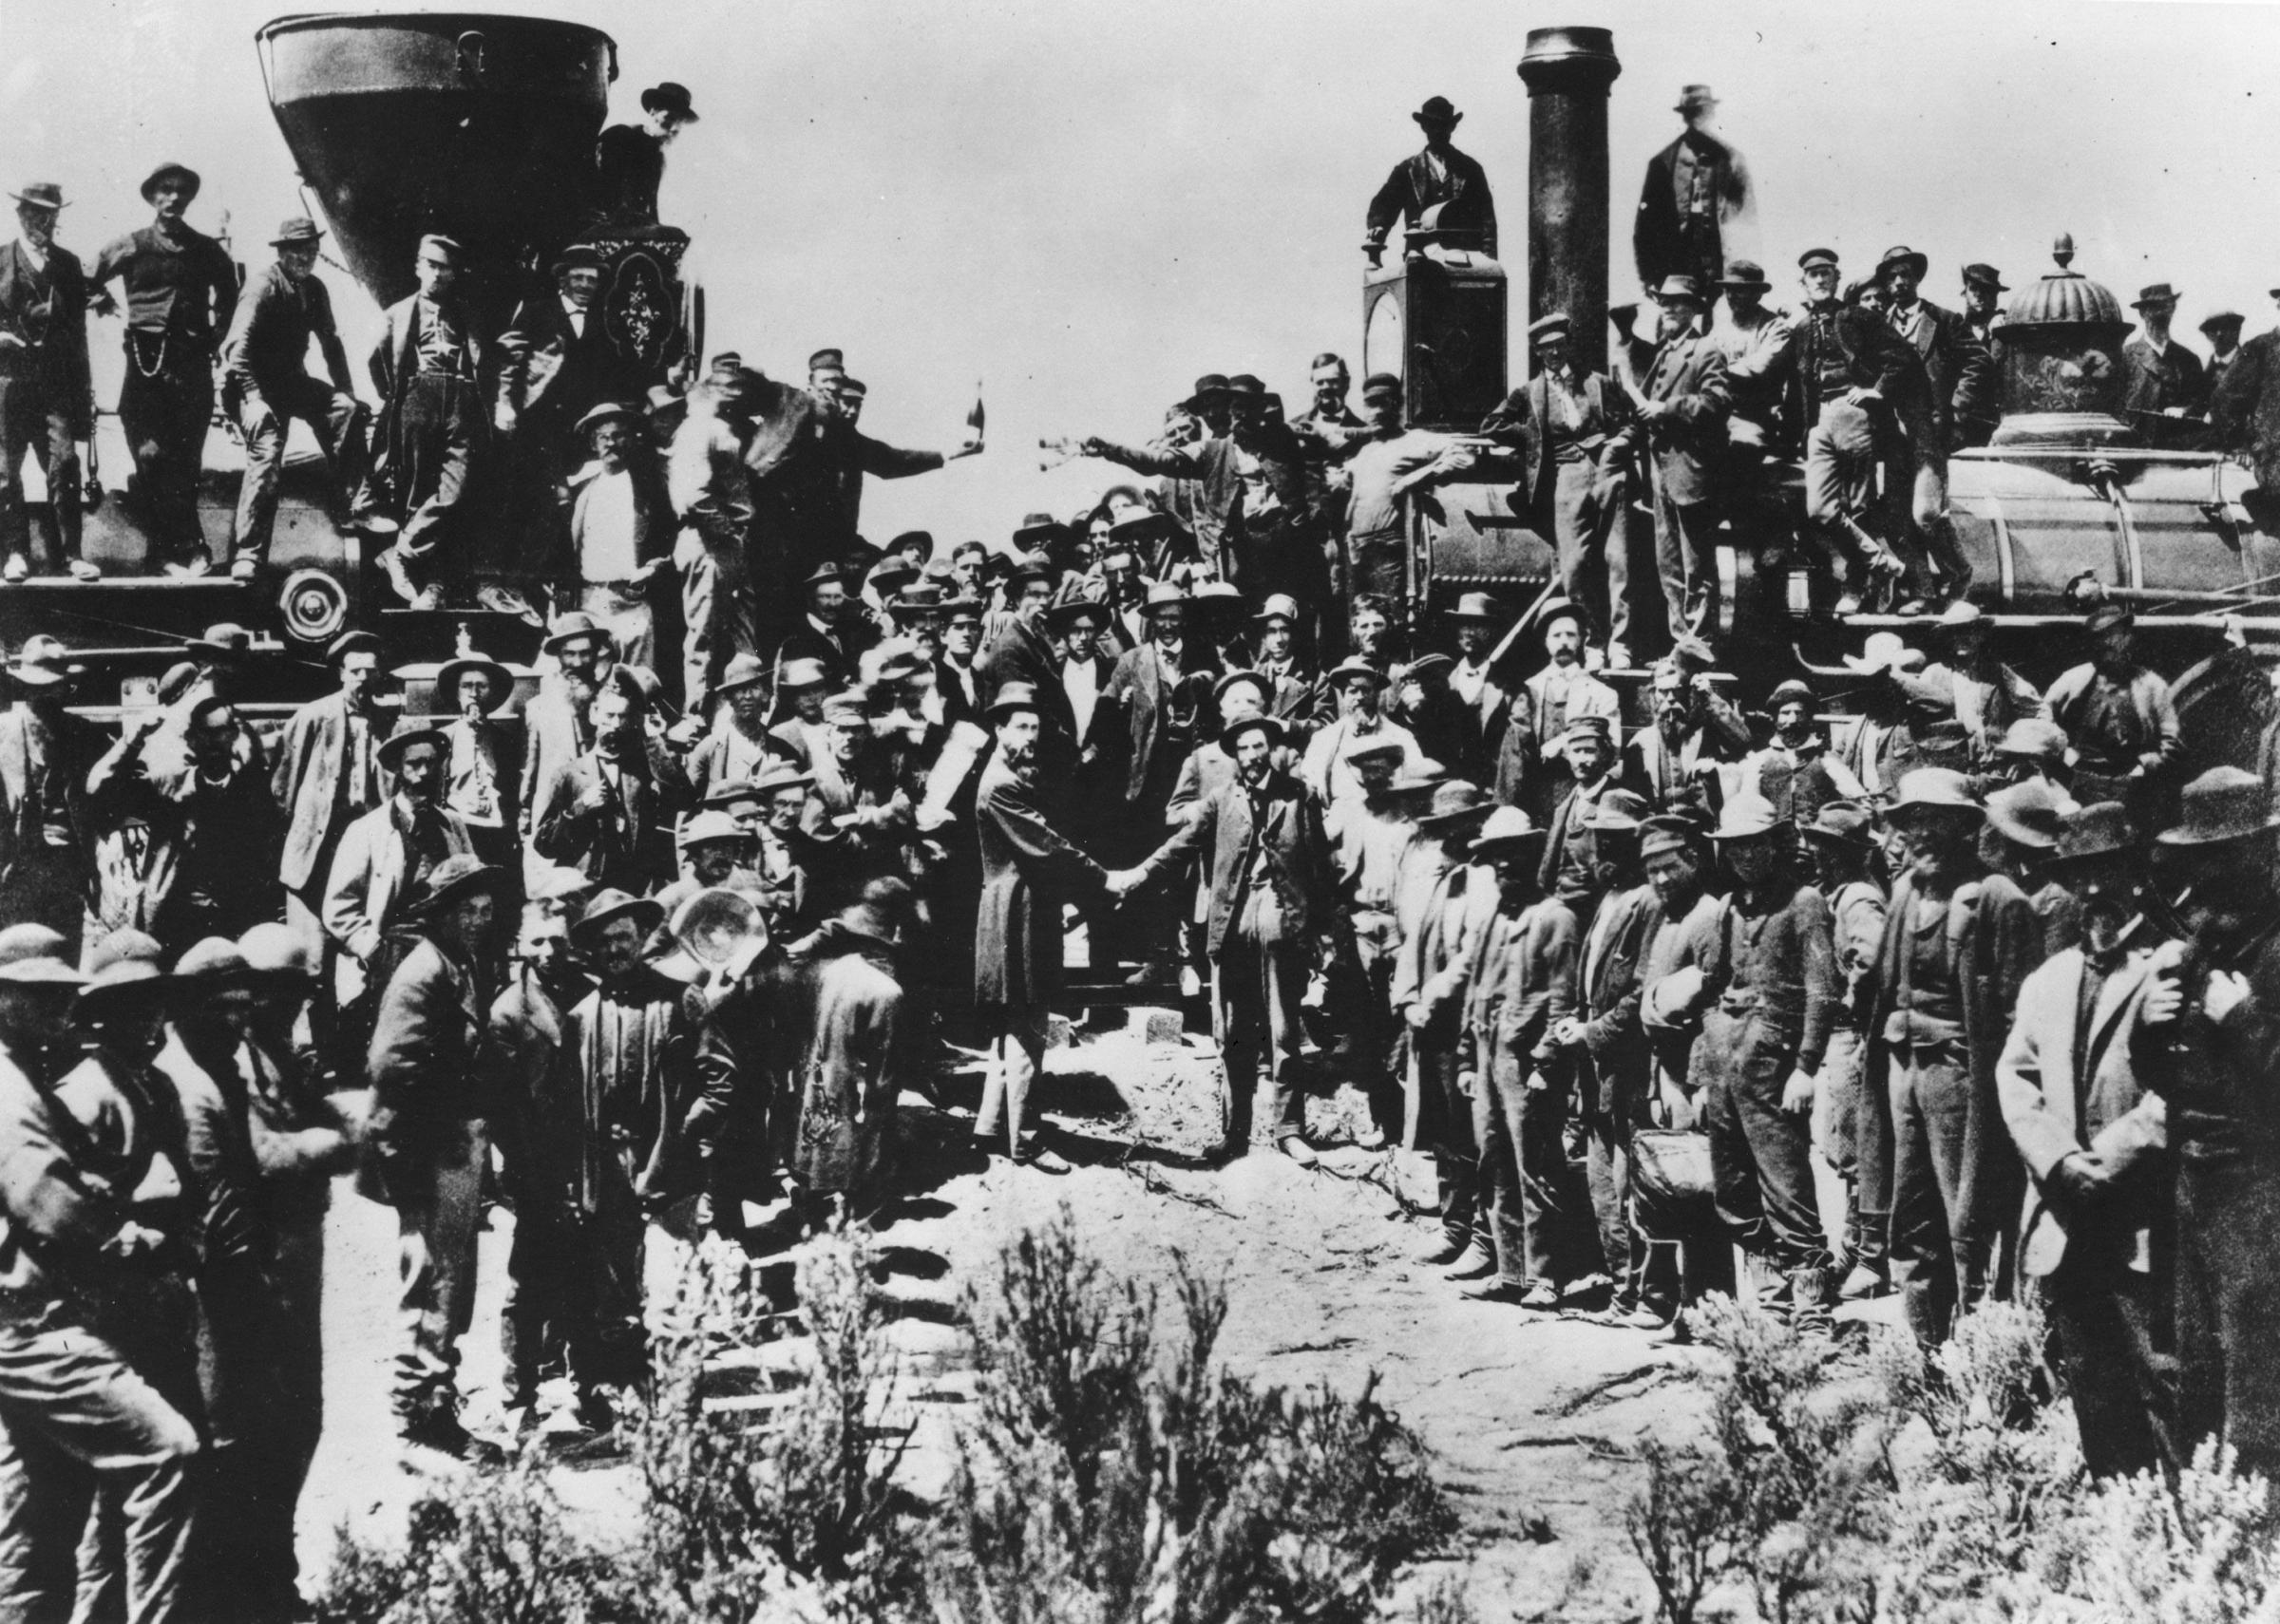 the first transcontinental railroad English: the first transcontinental railroad built across the north american continent in the central and western united states between 1863 and 1869.